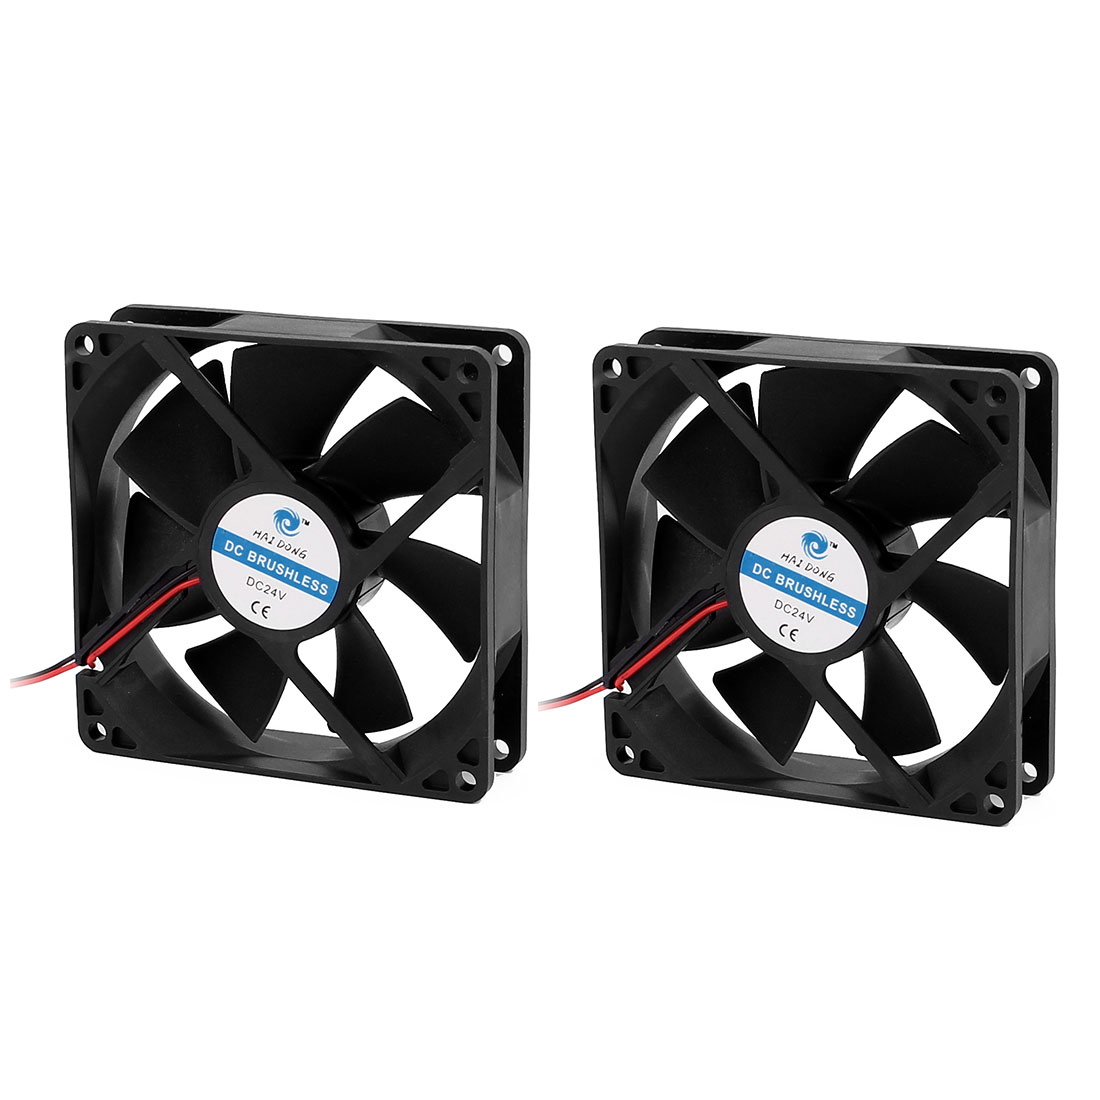 2Pcs 92 x 25mm DC 24V 0.18A Brushless CPU Cooler Heatsink Cooling Fan Black Power 3.6W